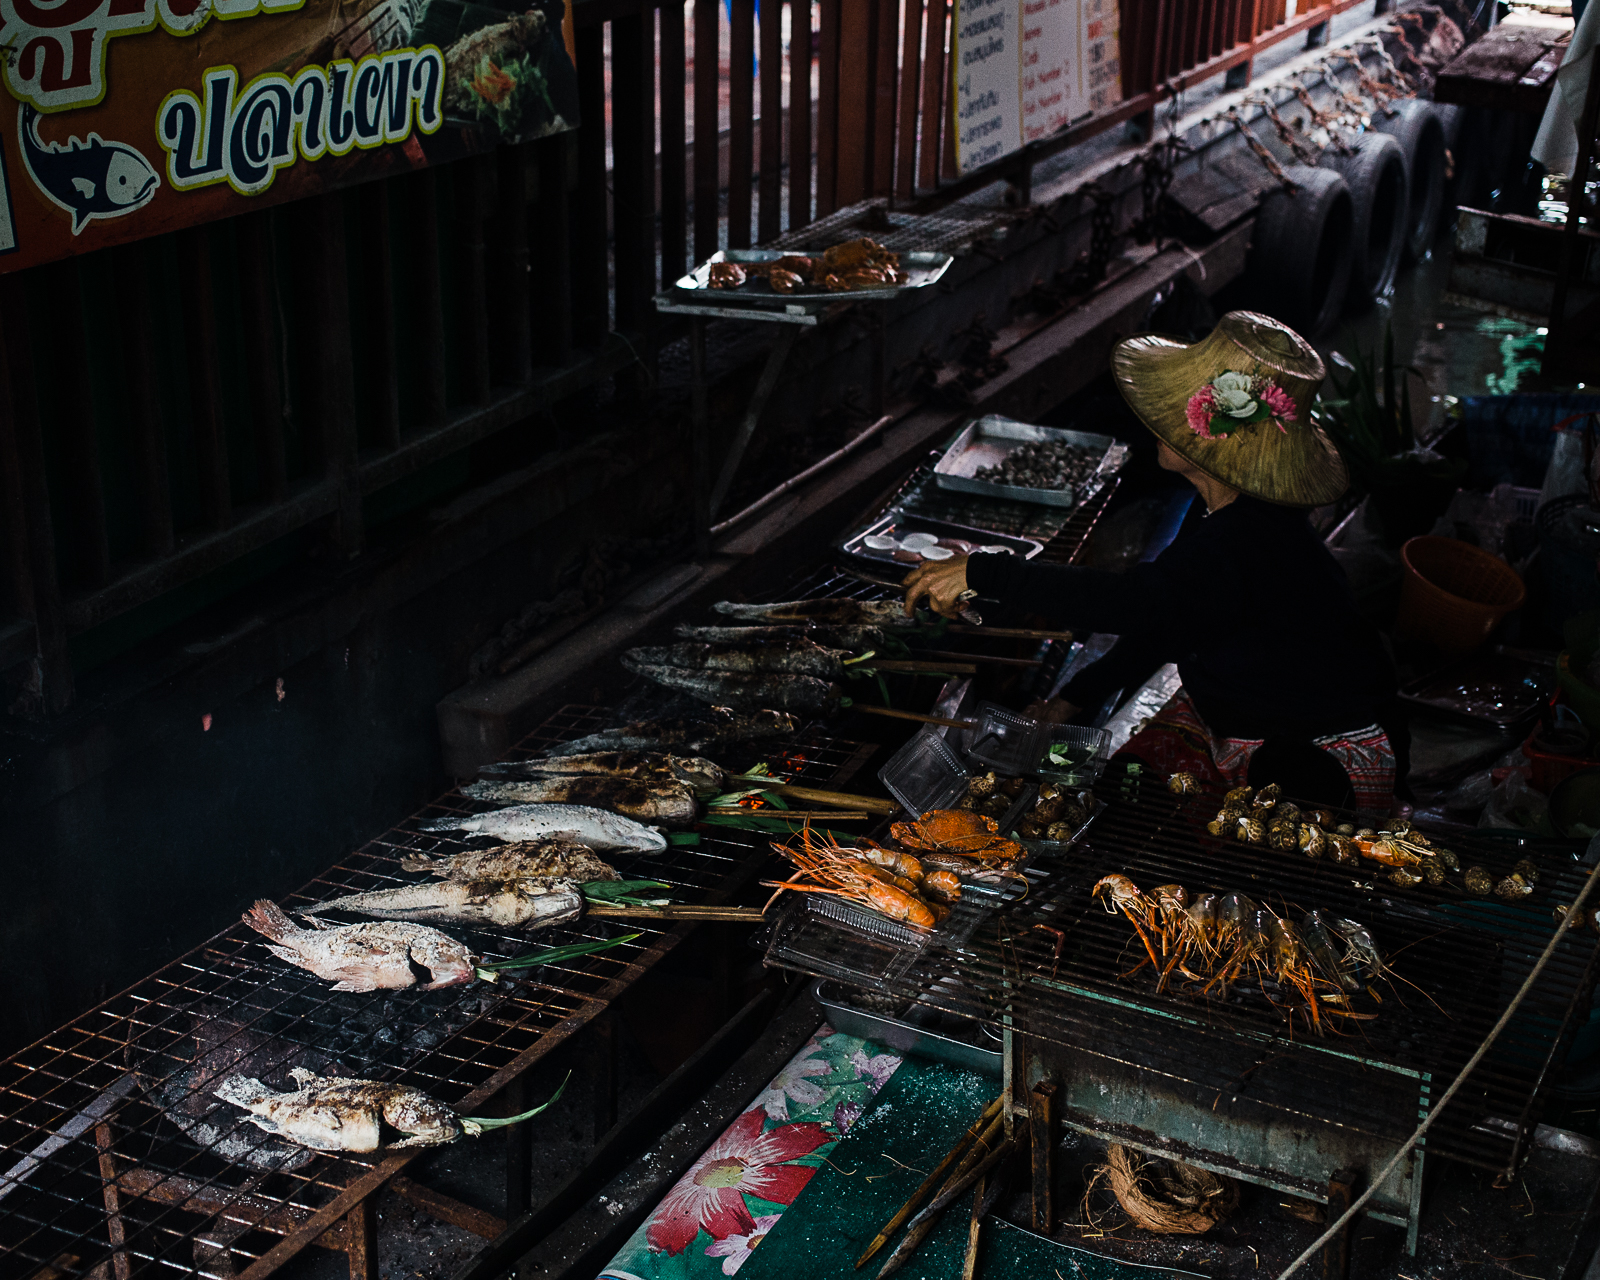 Floating Market Fish Peddler.jpg